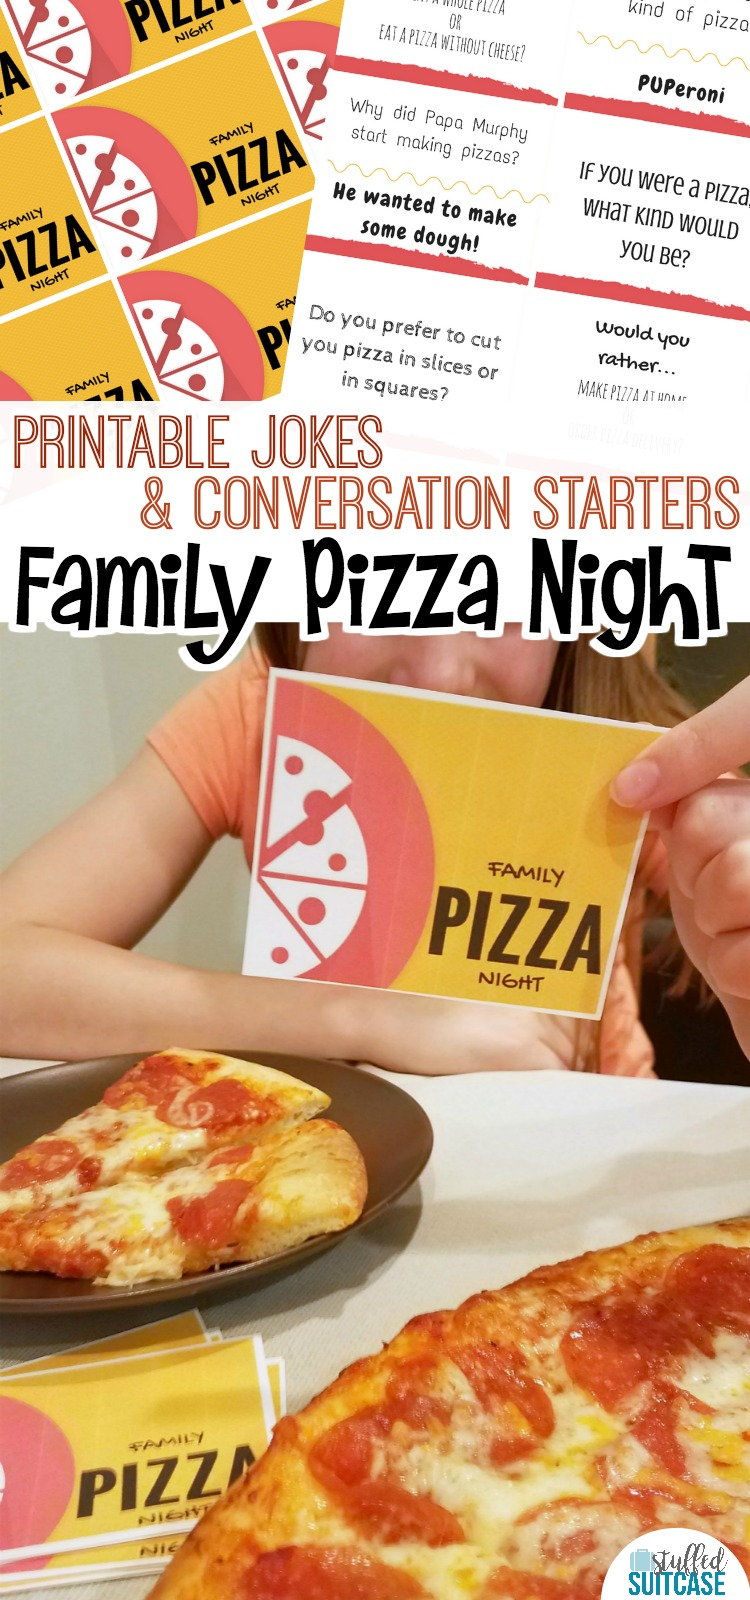 Pizza is popular for busy family nights, add my free printable conversation starters and jokes to make your pizza night a family fun night!